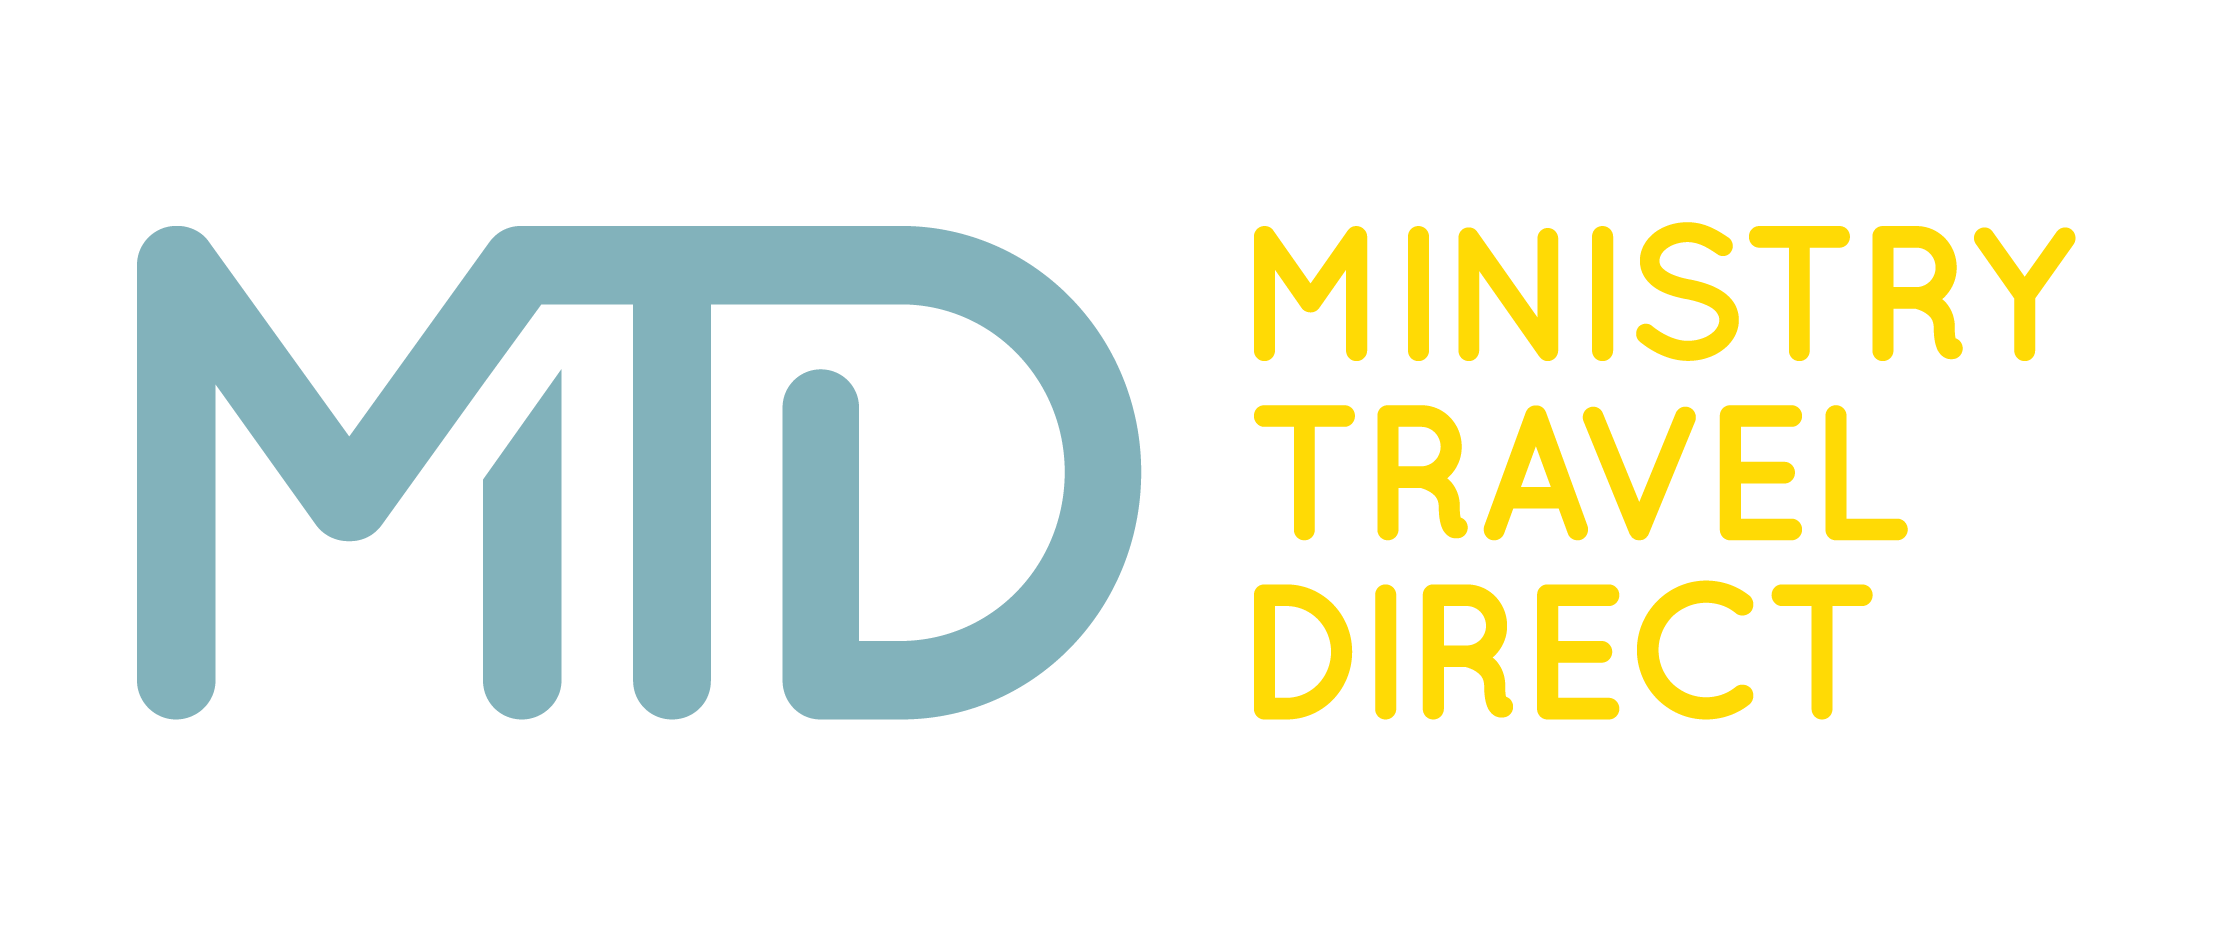 MINISTRY_TRAVEL_DIRECT_HORIZONTAL.png